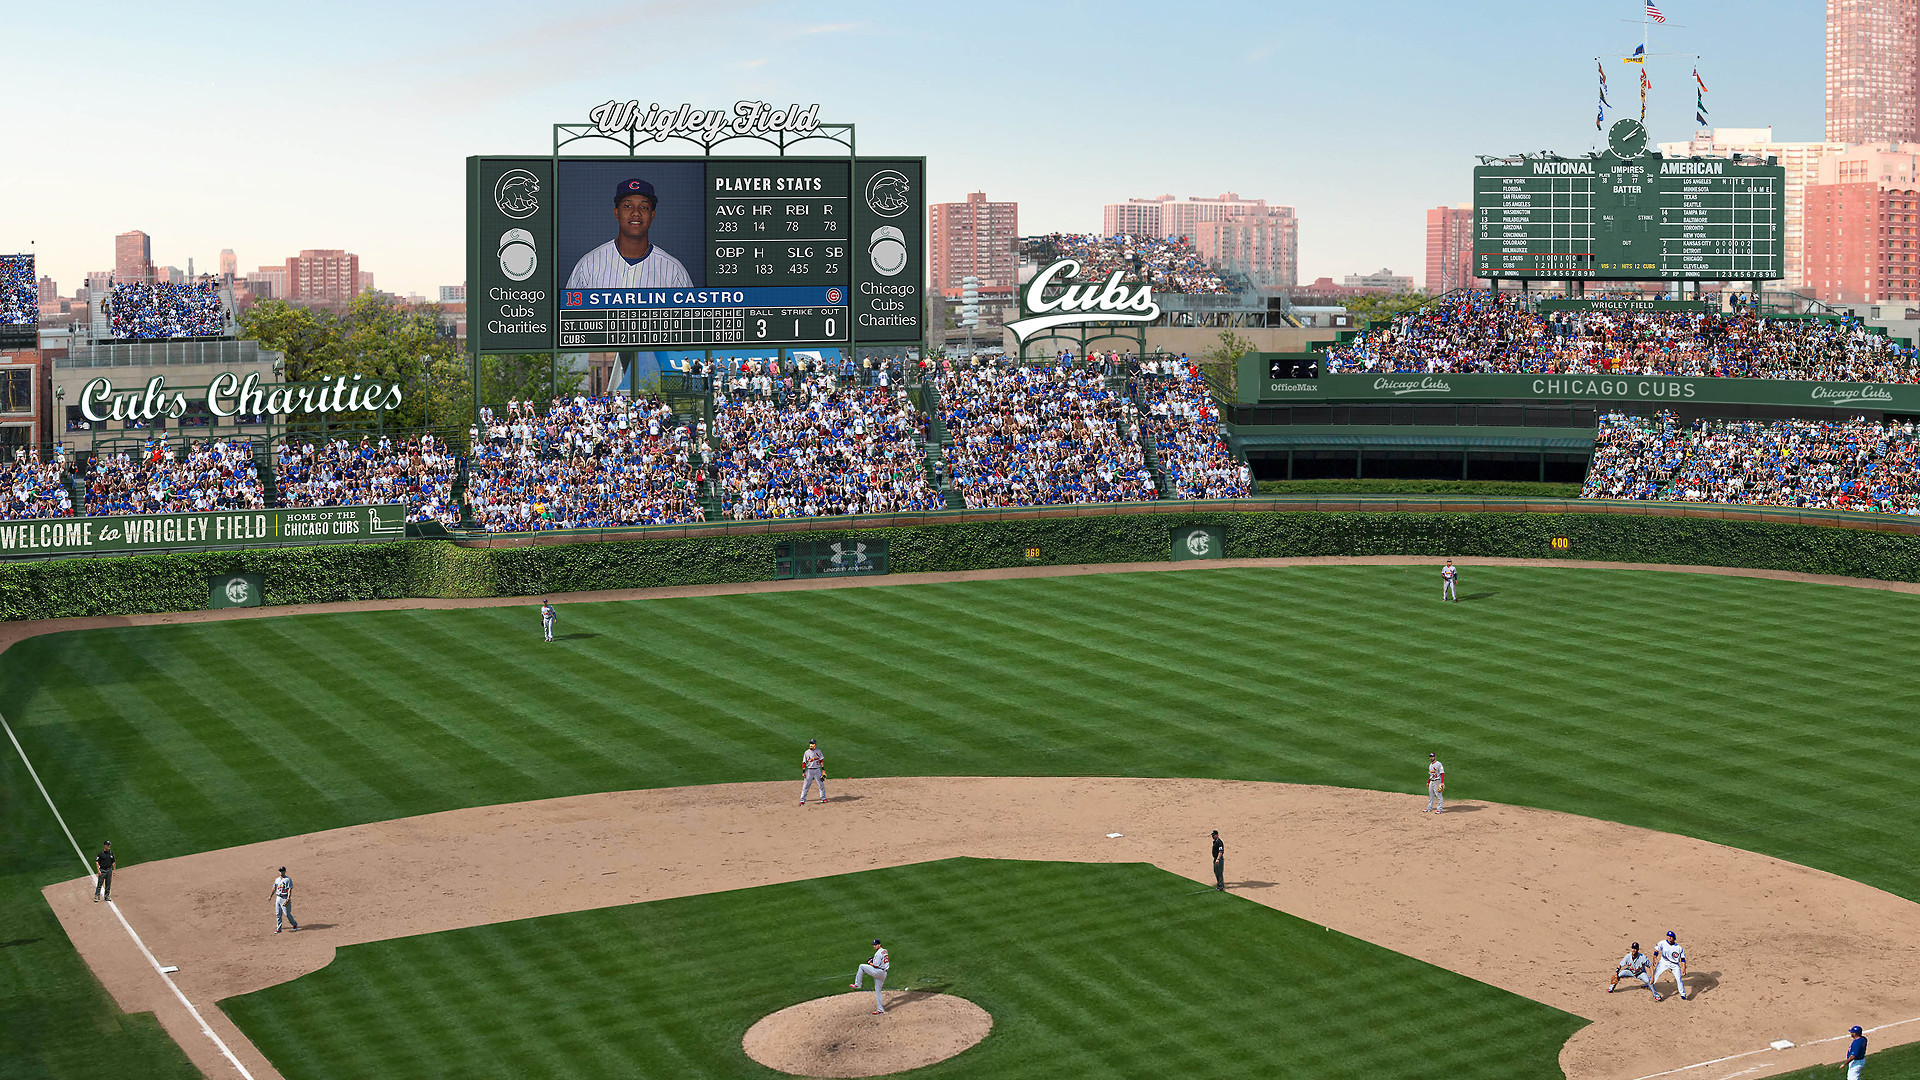 Landmark Commission To Vote On Proposed Wrigley Field Changes